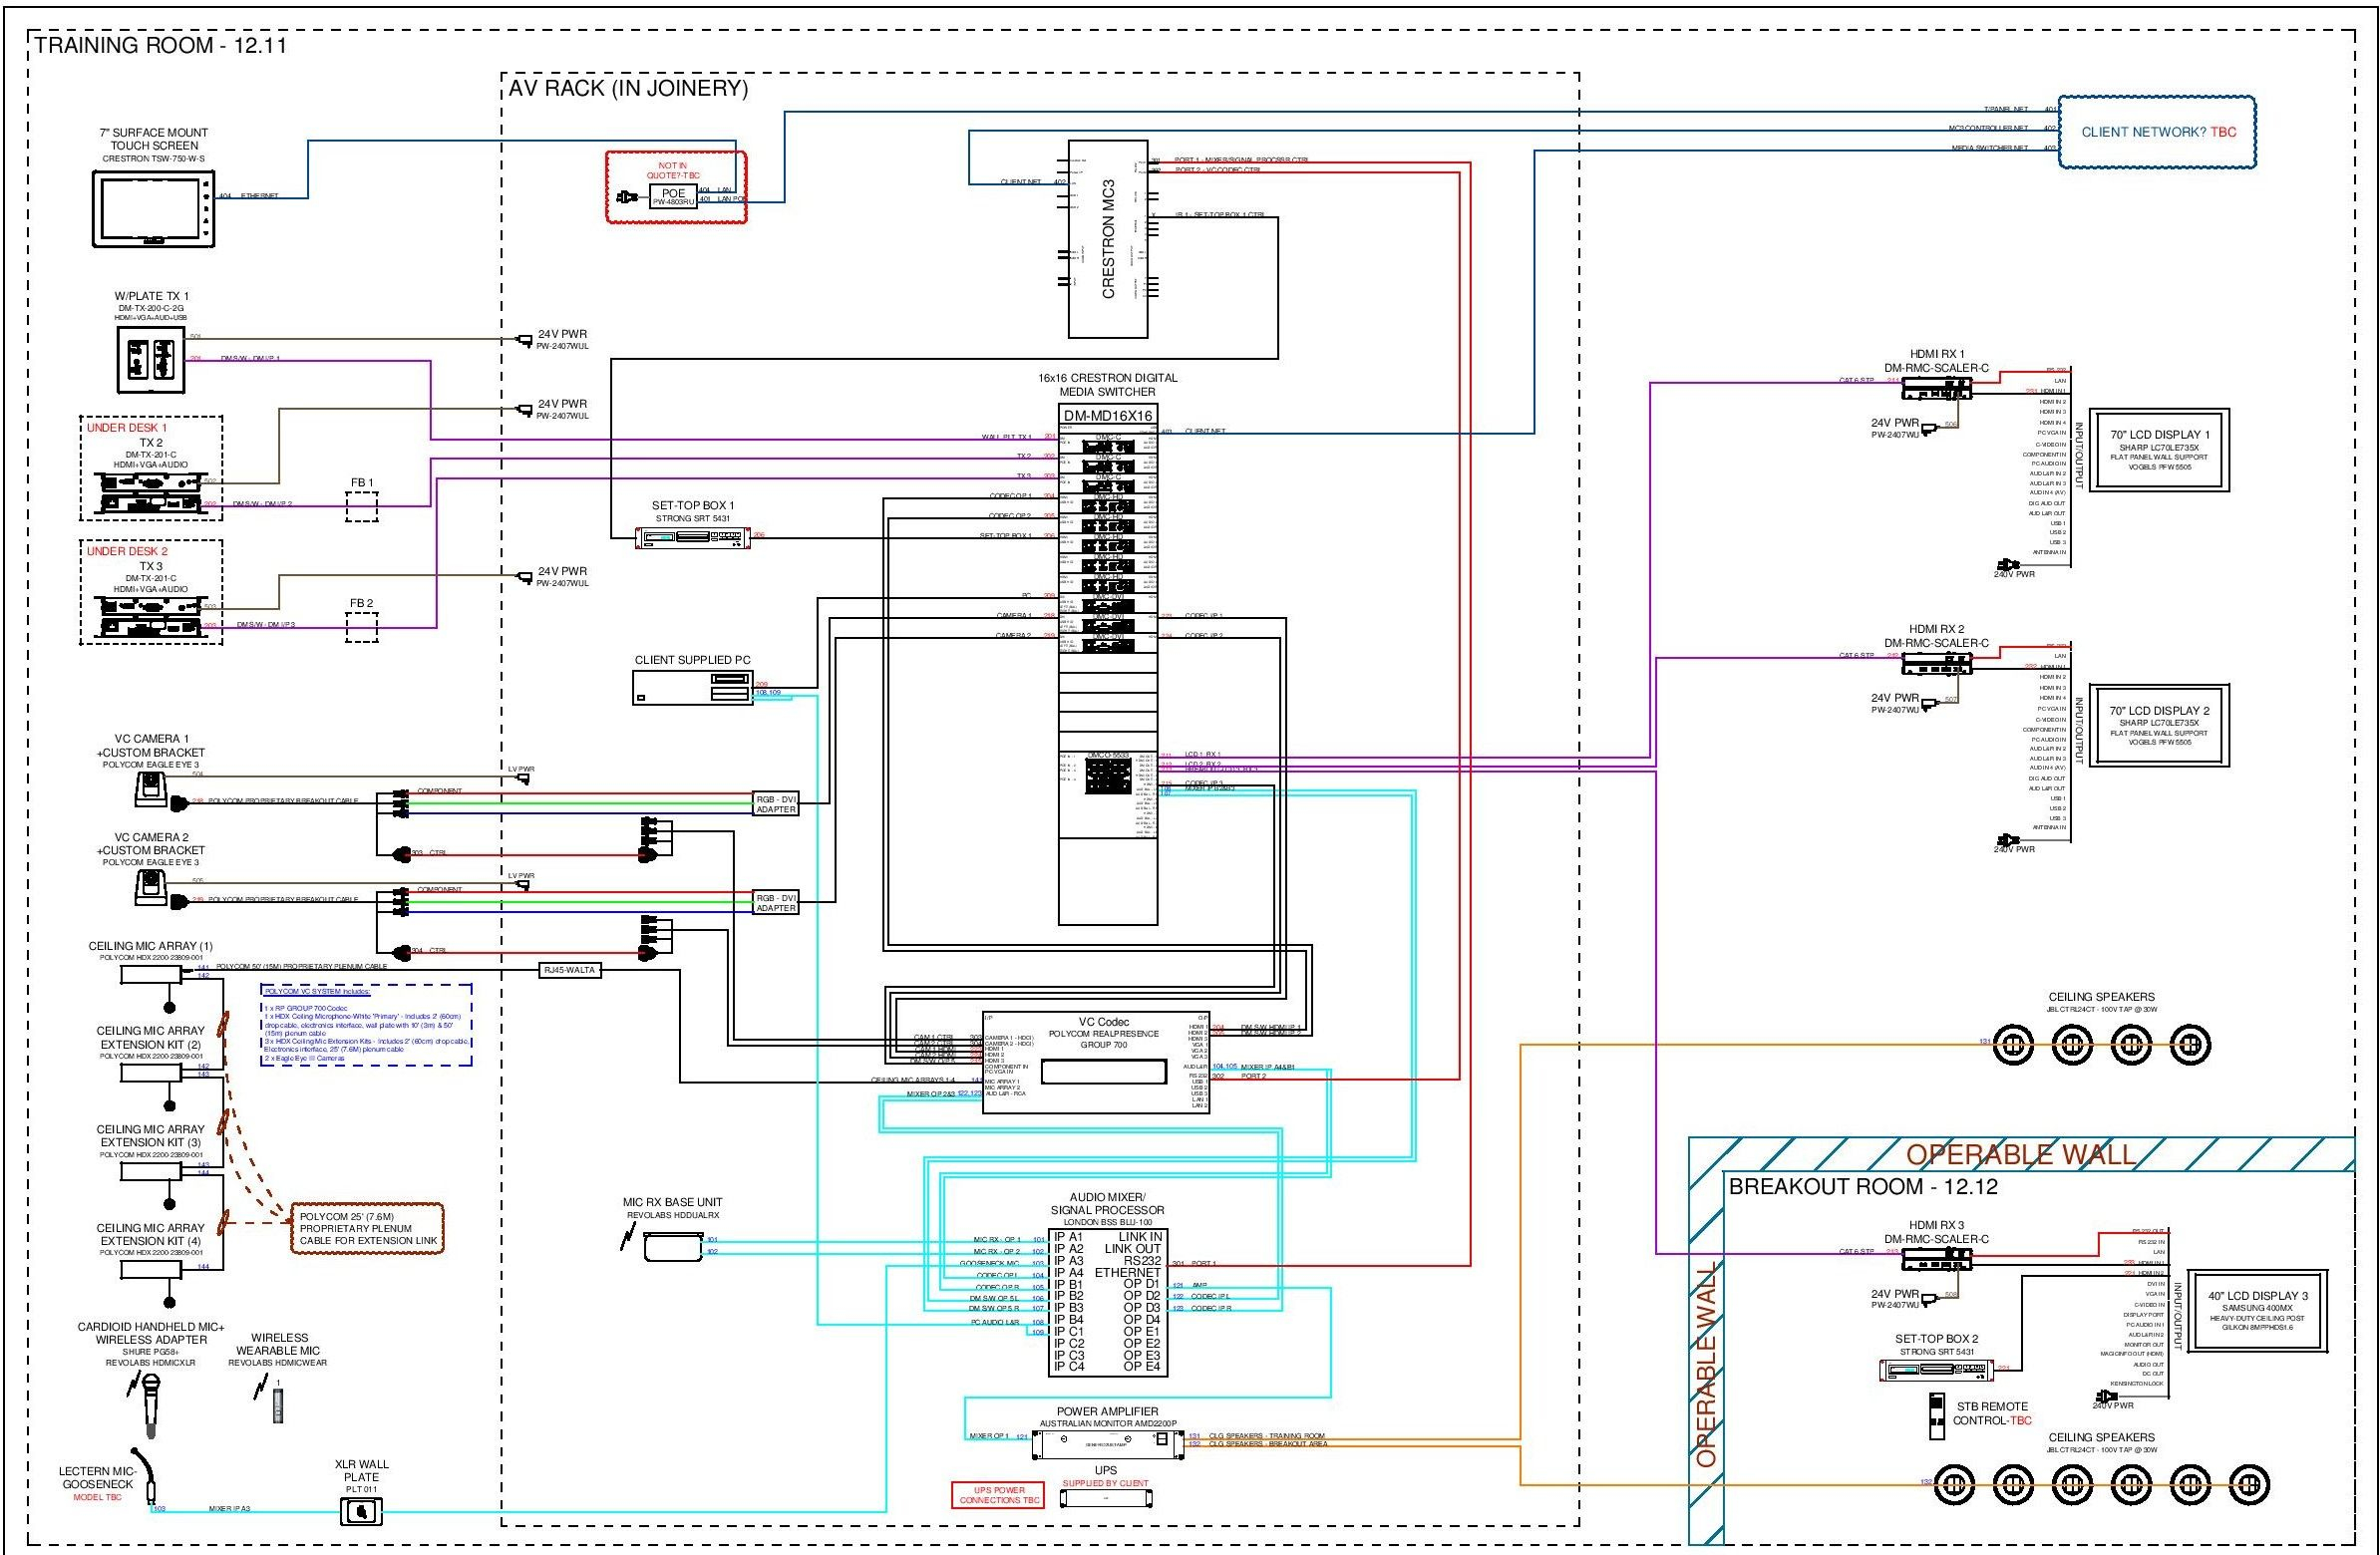 crestron thermostat wiring diagram Download-165 hp mercruiser wiring diagram website of cocopear wiring diagram u2022 rh wiring diagram co uk 19-a